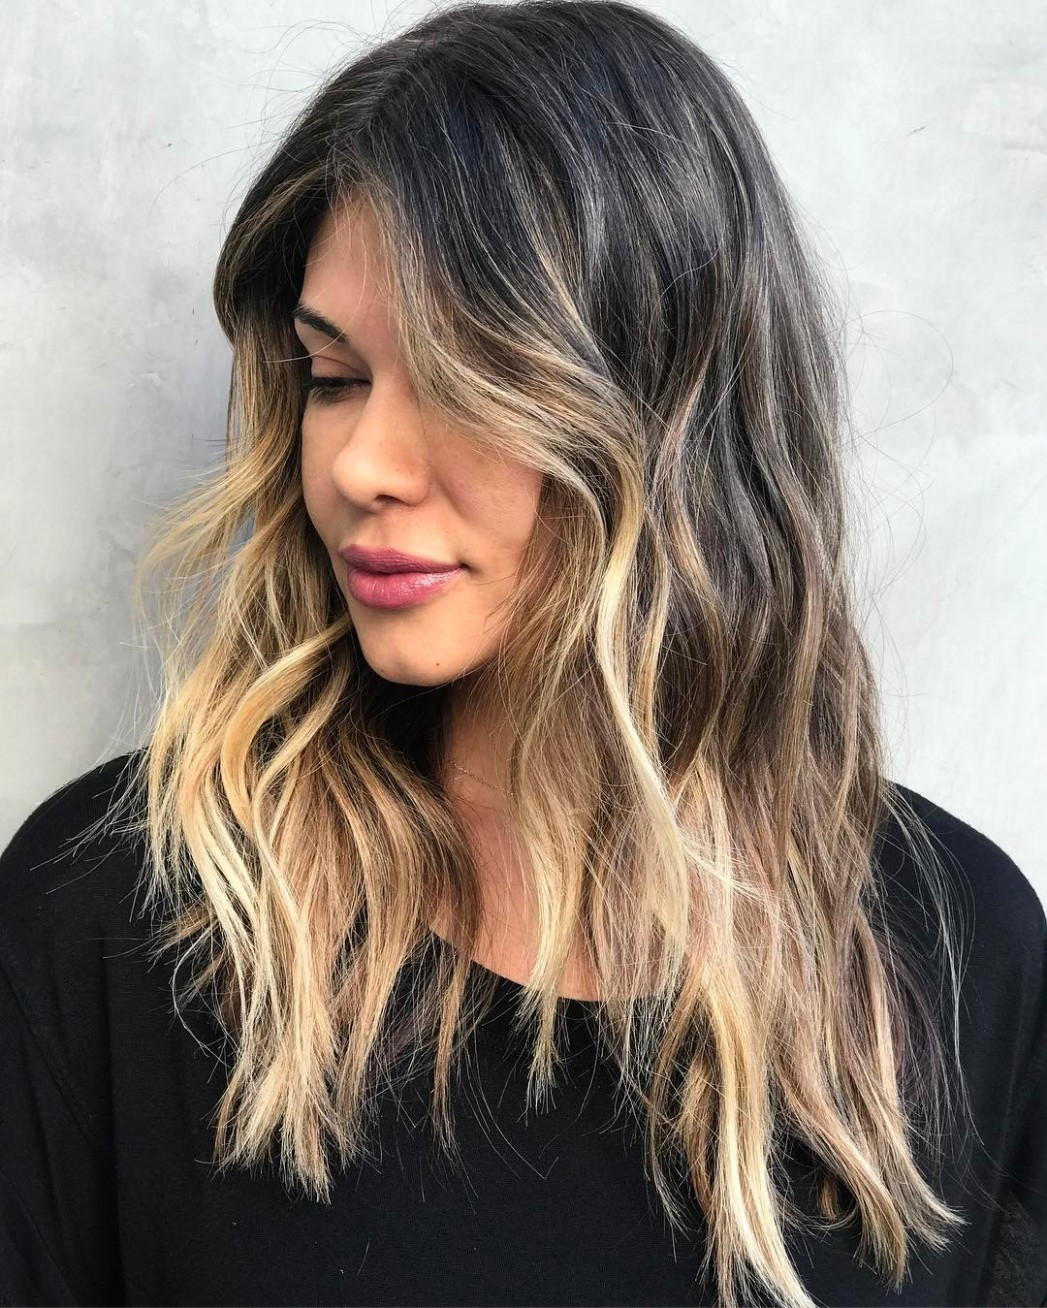 10 Best Haircuts For Long Faces In 10 Hair Adviser Face Frame Haircuts For Long Hair